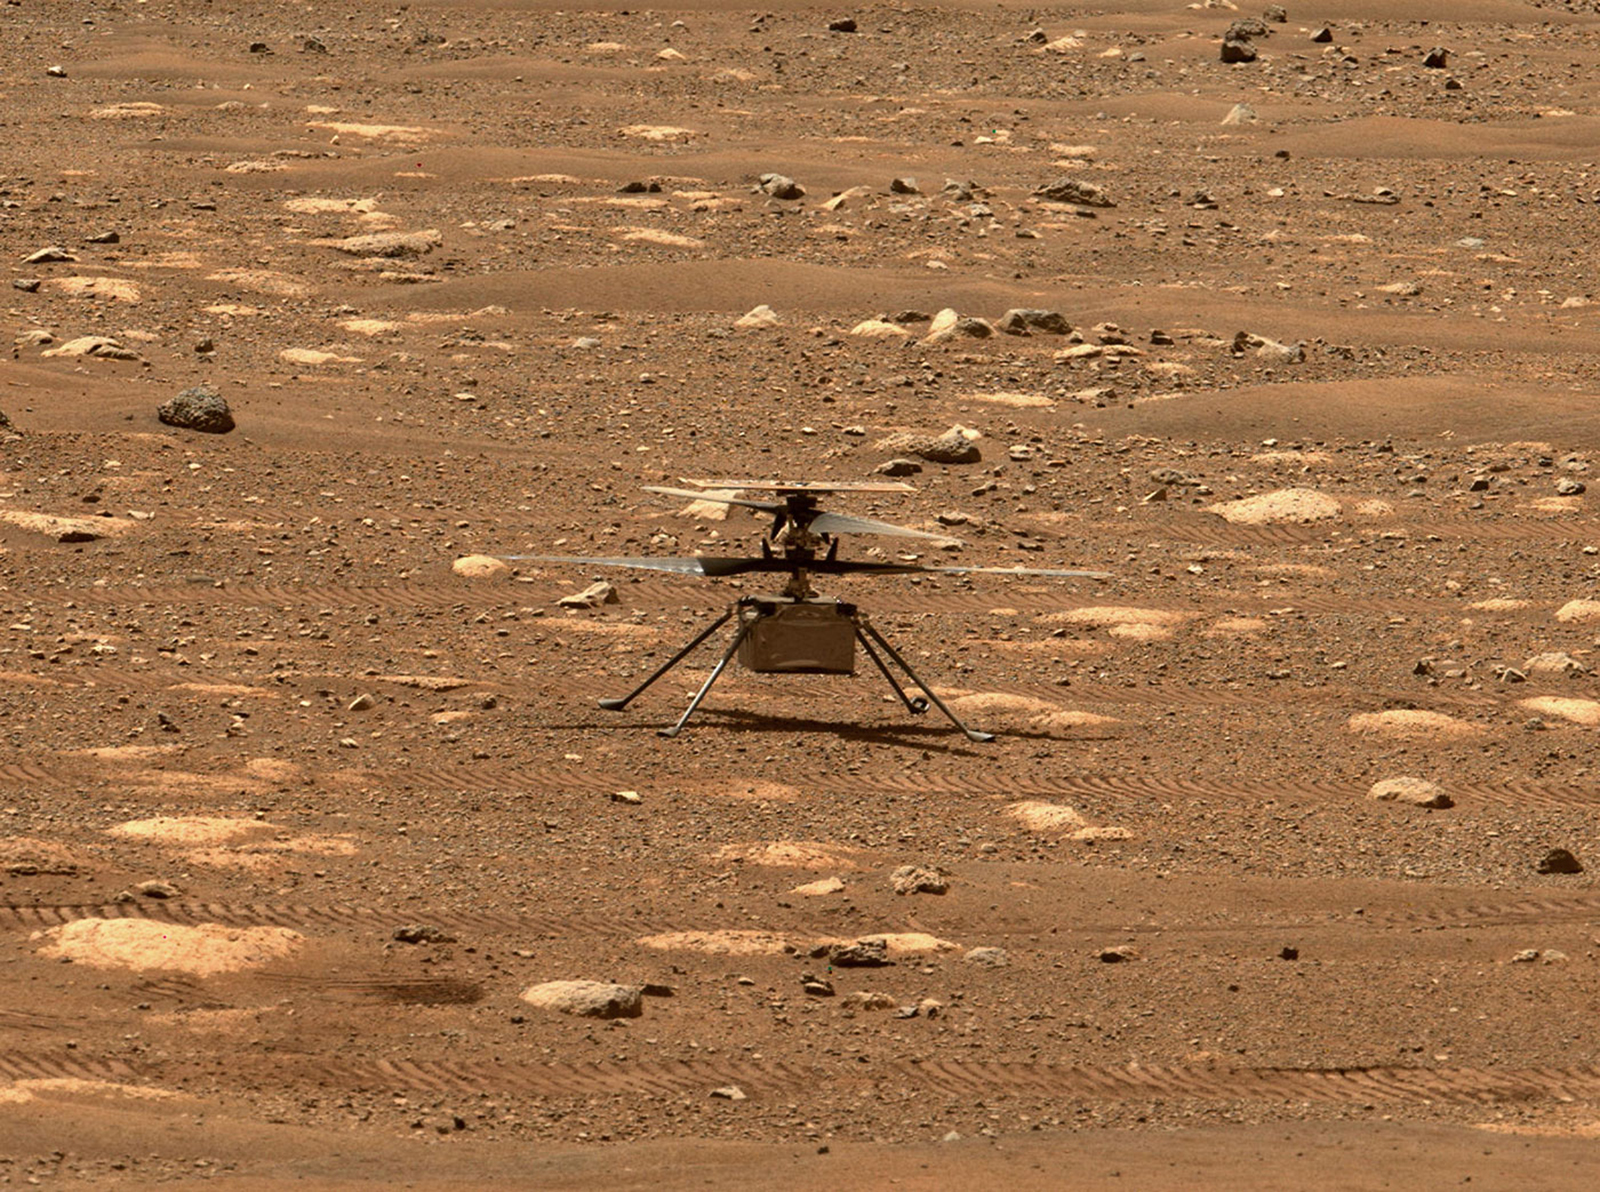 The Ingenuity helicopter will fly on Mars this weekend. What to expect